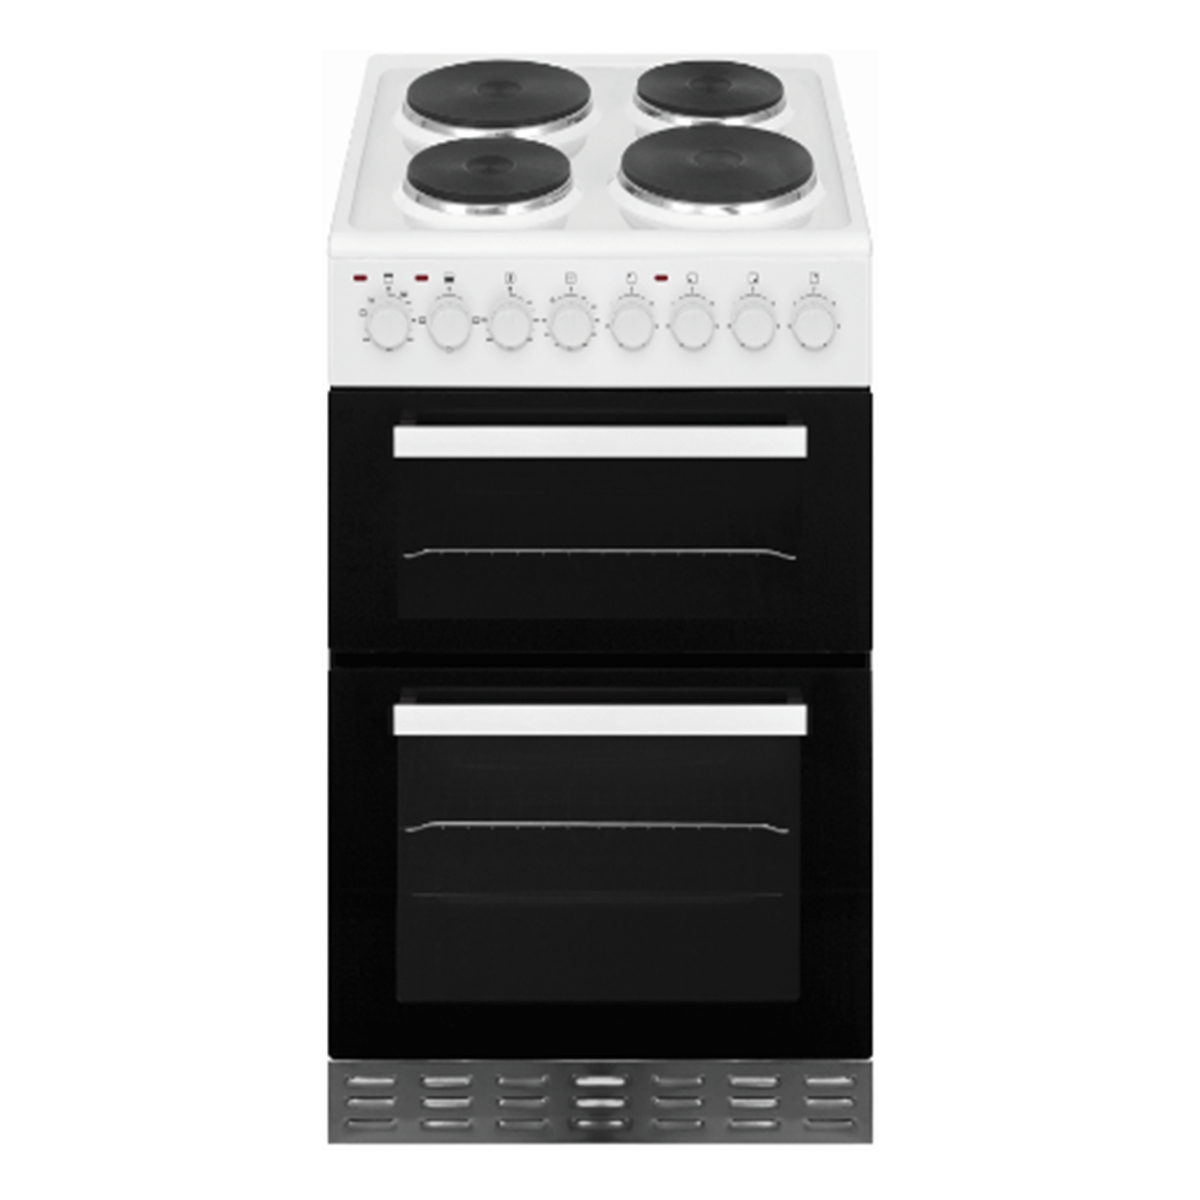 Simfer Sco52ew Electric Cooker With Hot Plate Hob Hughes